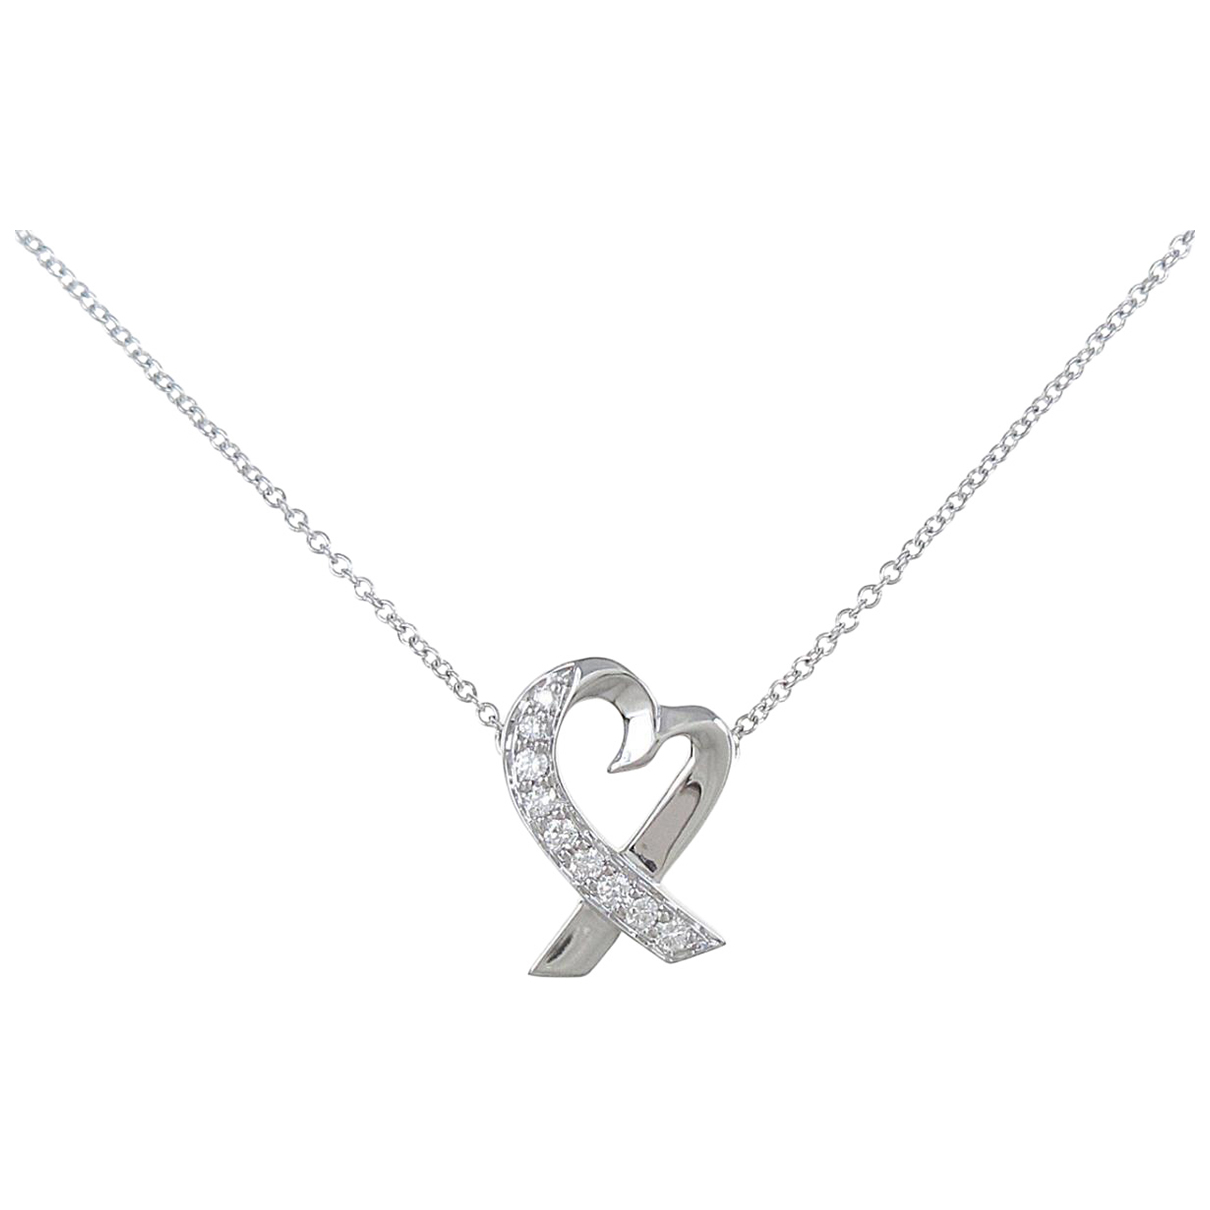 Tiffany & Co N Silver White gold necklace for Women N